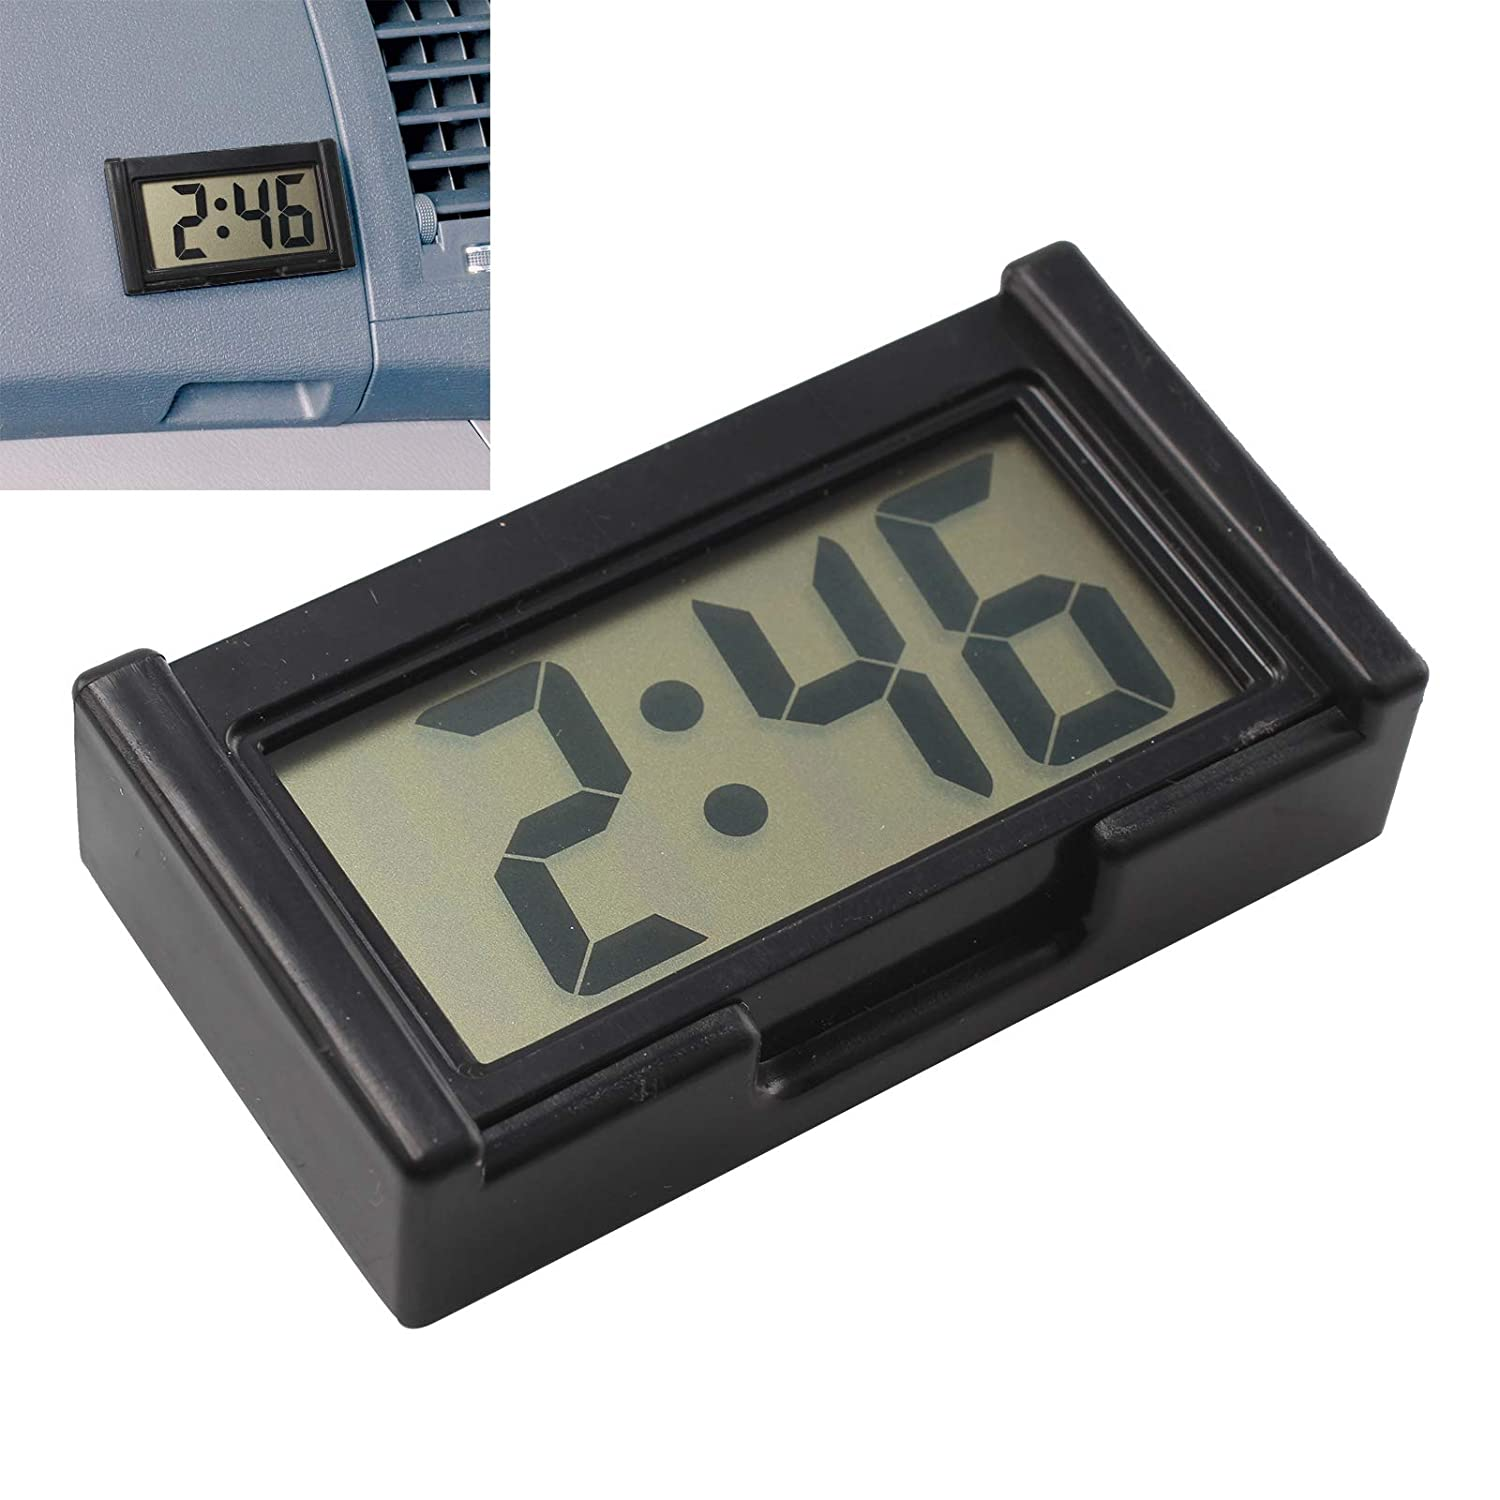 DHOUTDOORS Digital LCD Clock Car Dashboard Desk Vehicle Date Time LCD Screen Self-Adhesive Bracket